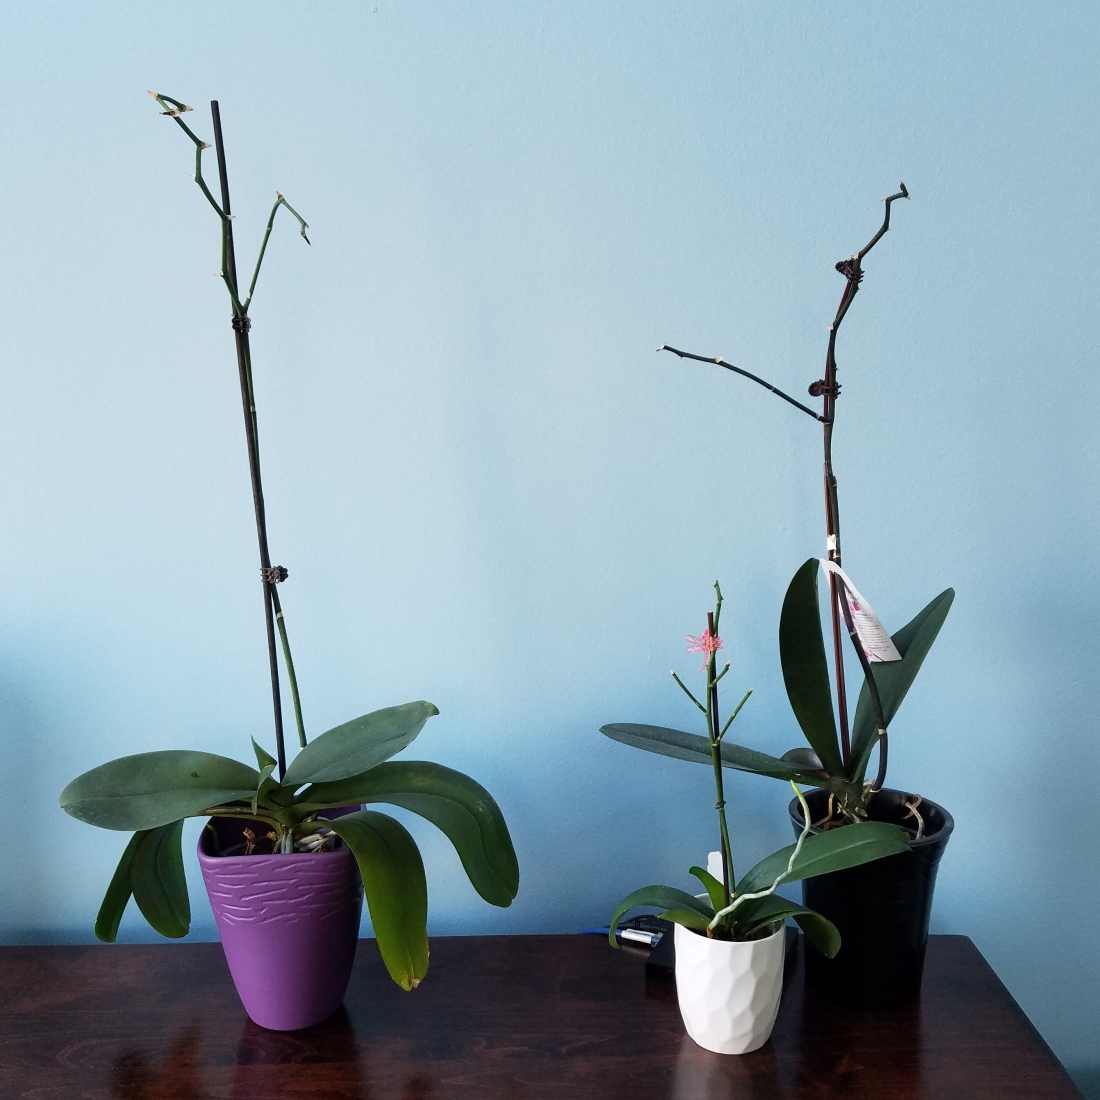 Potted Non-Blooming Orchid Plants